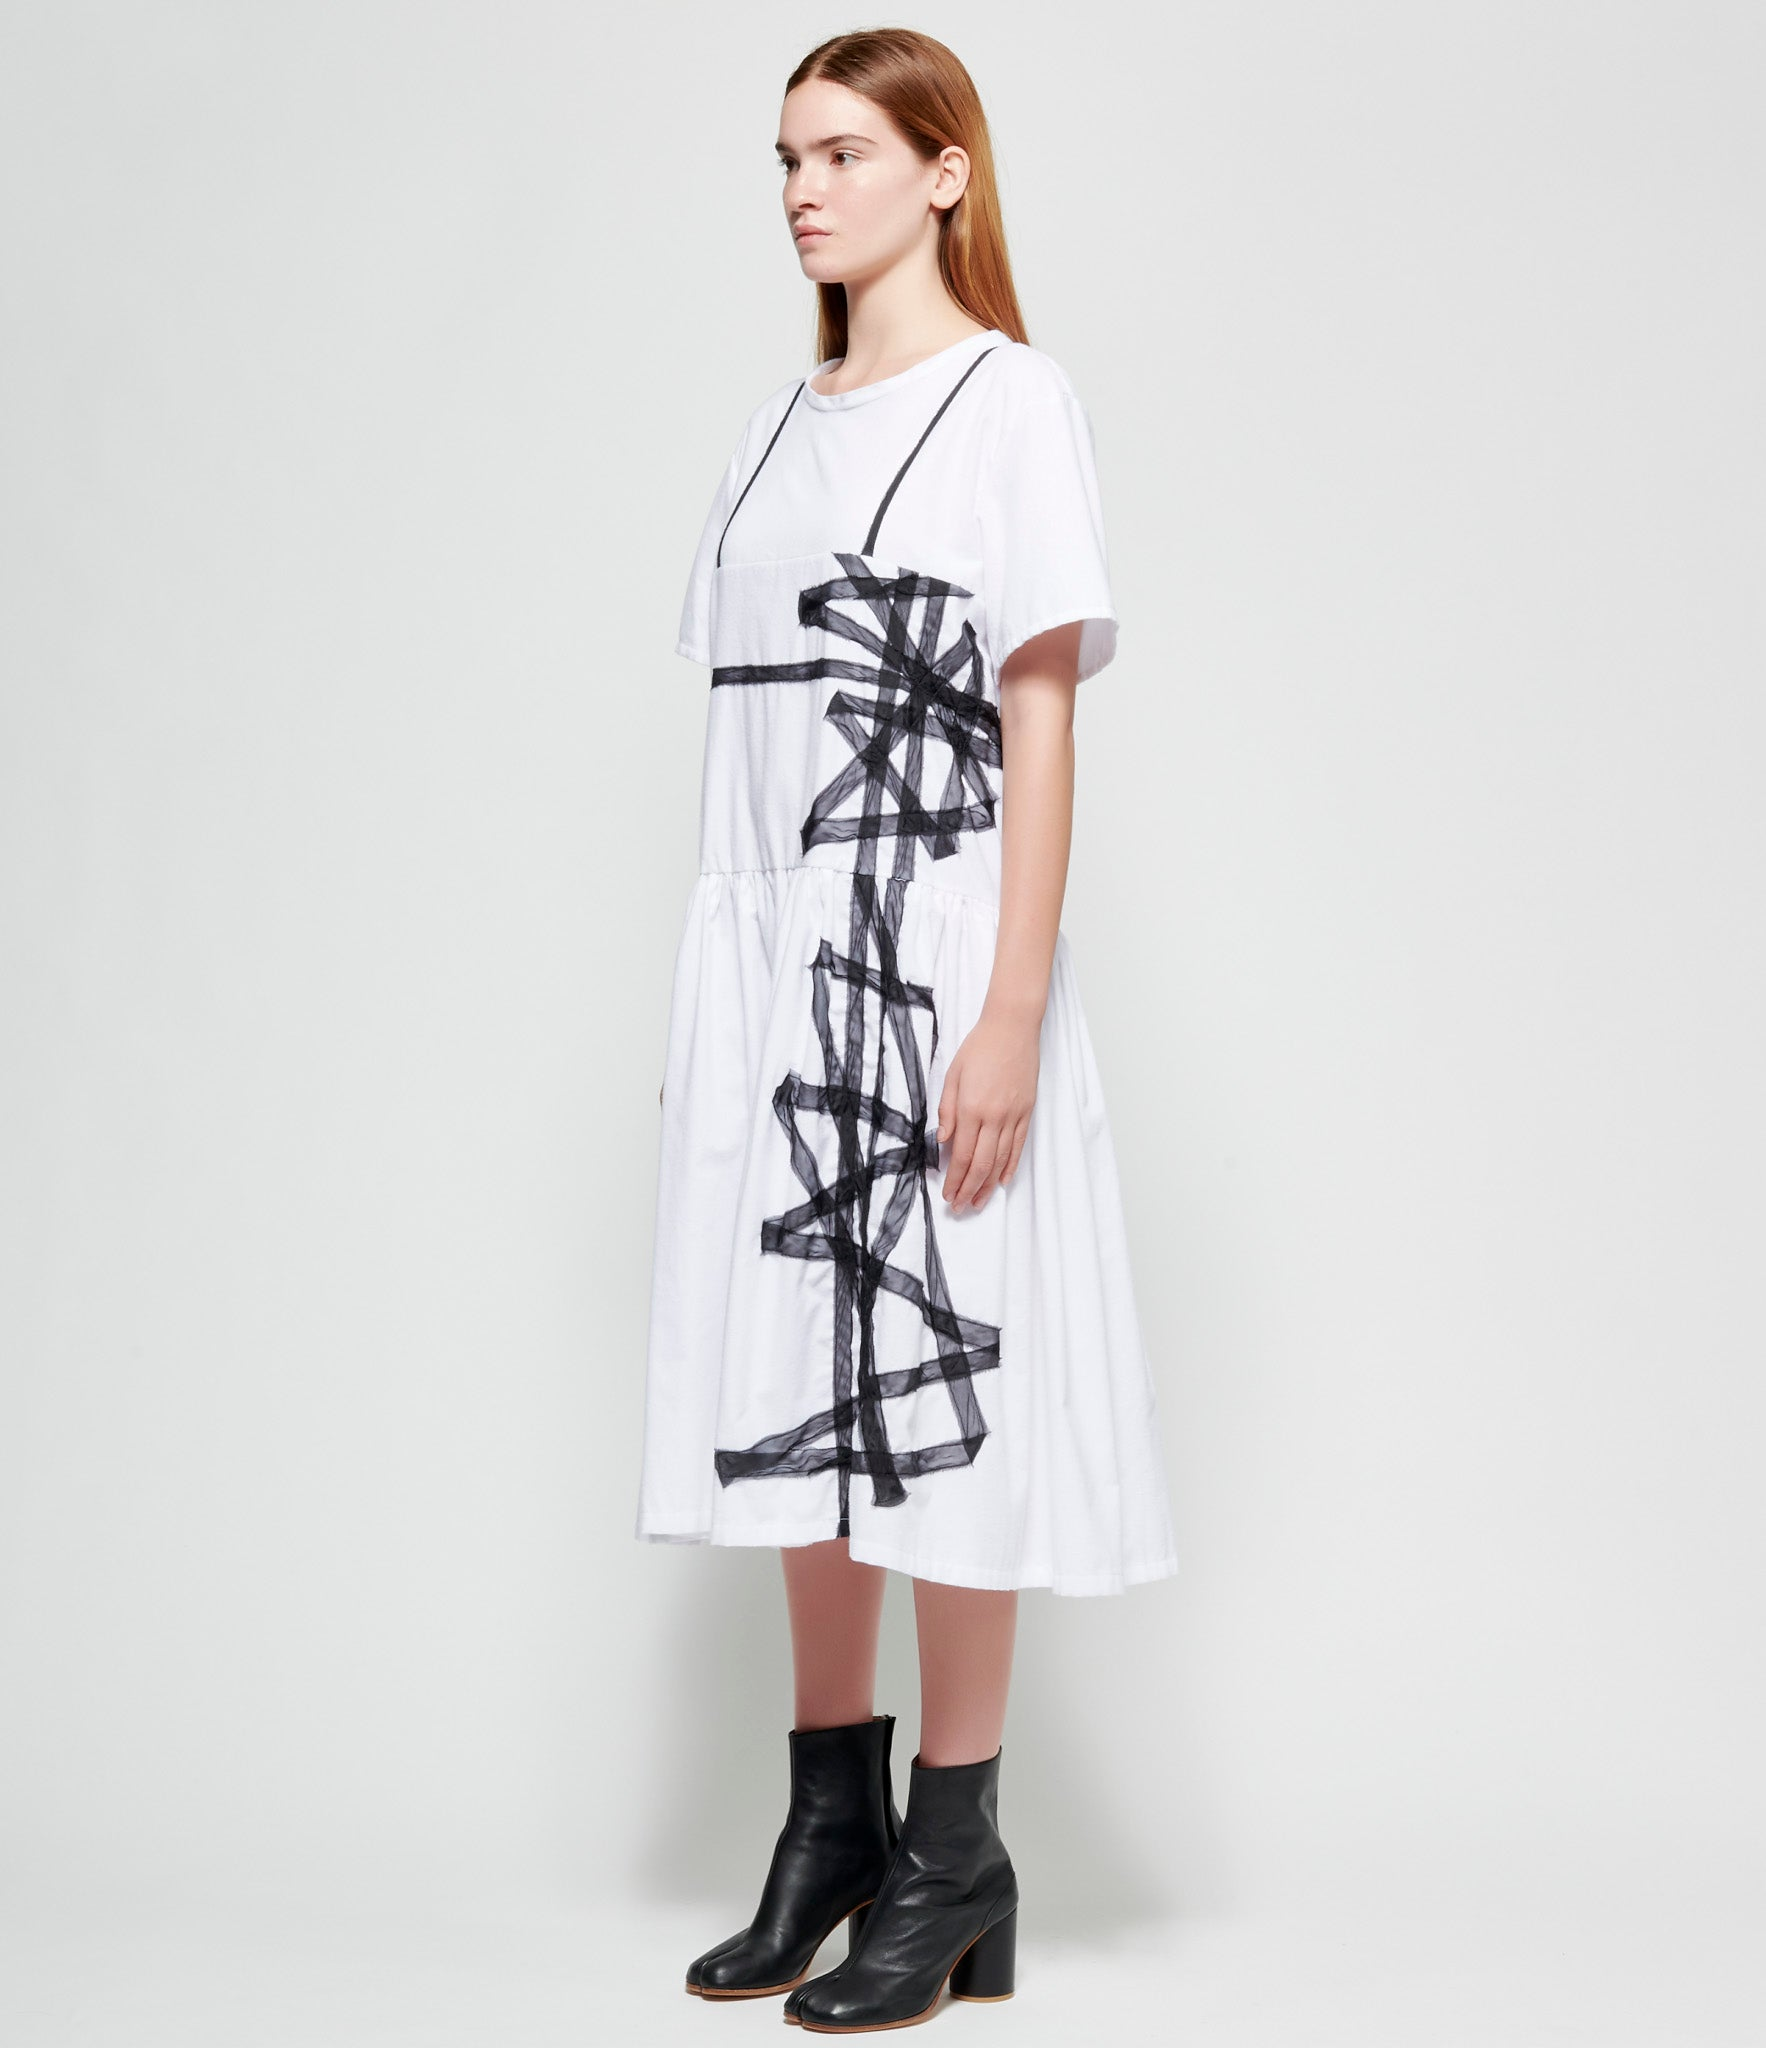 Maria Turri Ribbon Appliquéd Hot Cotton Dress